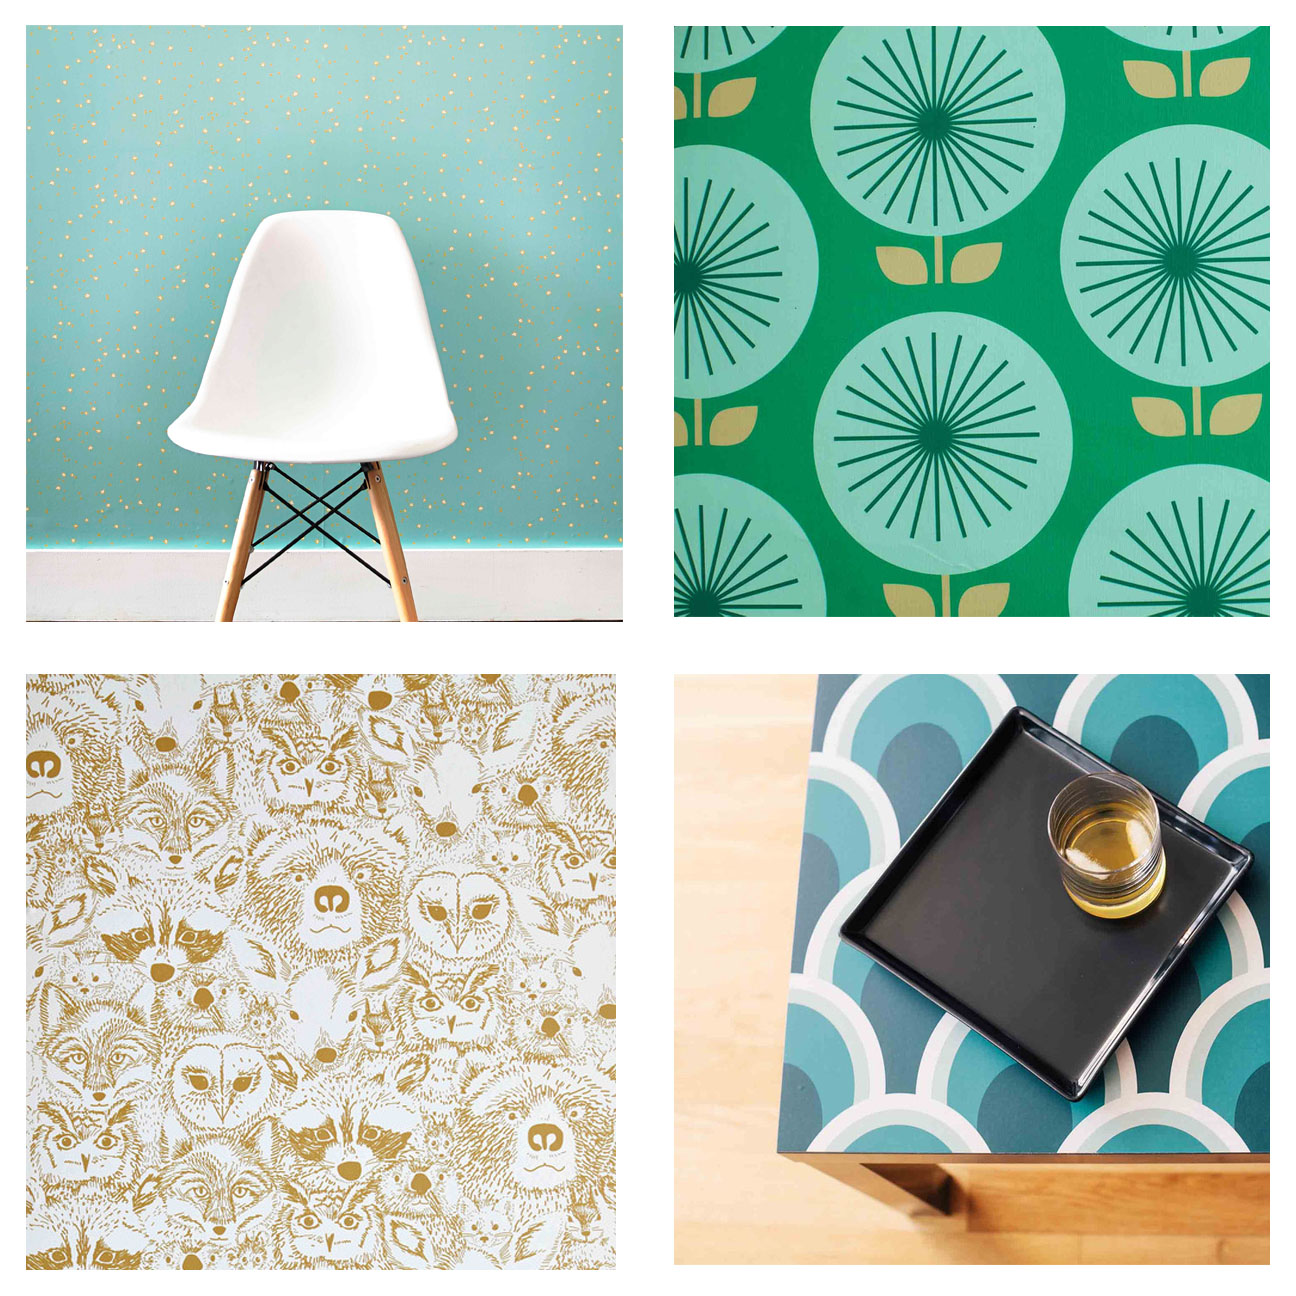 Chasing Paper Removable Wallpaper Star Bright top left Sunburst 1296x1296